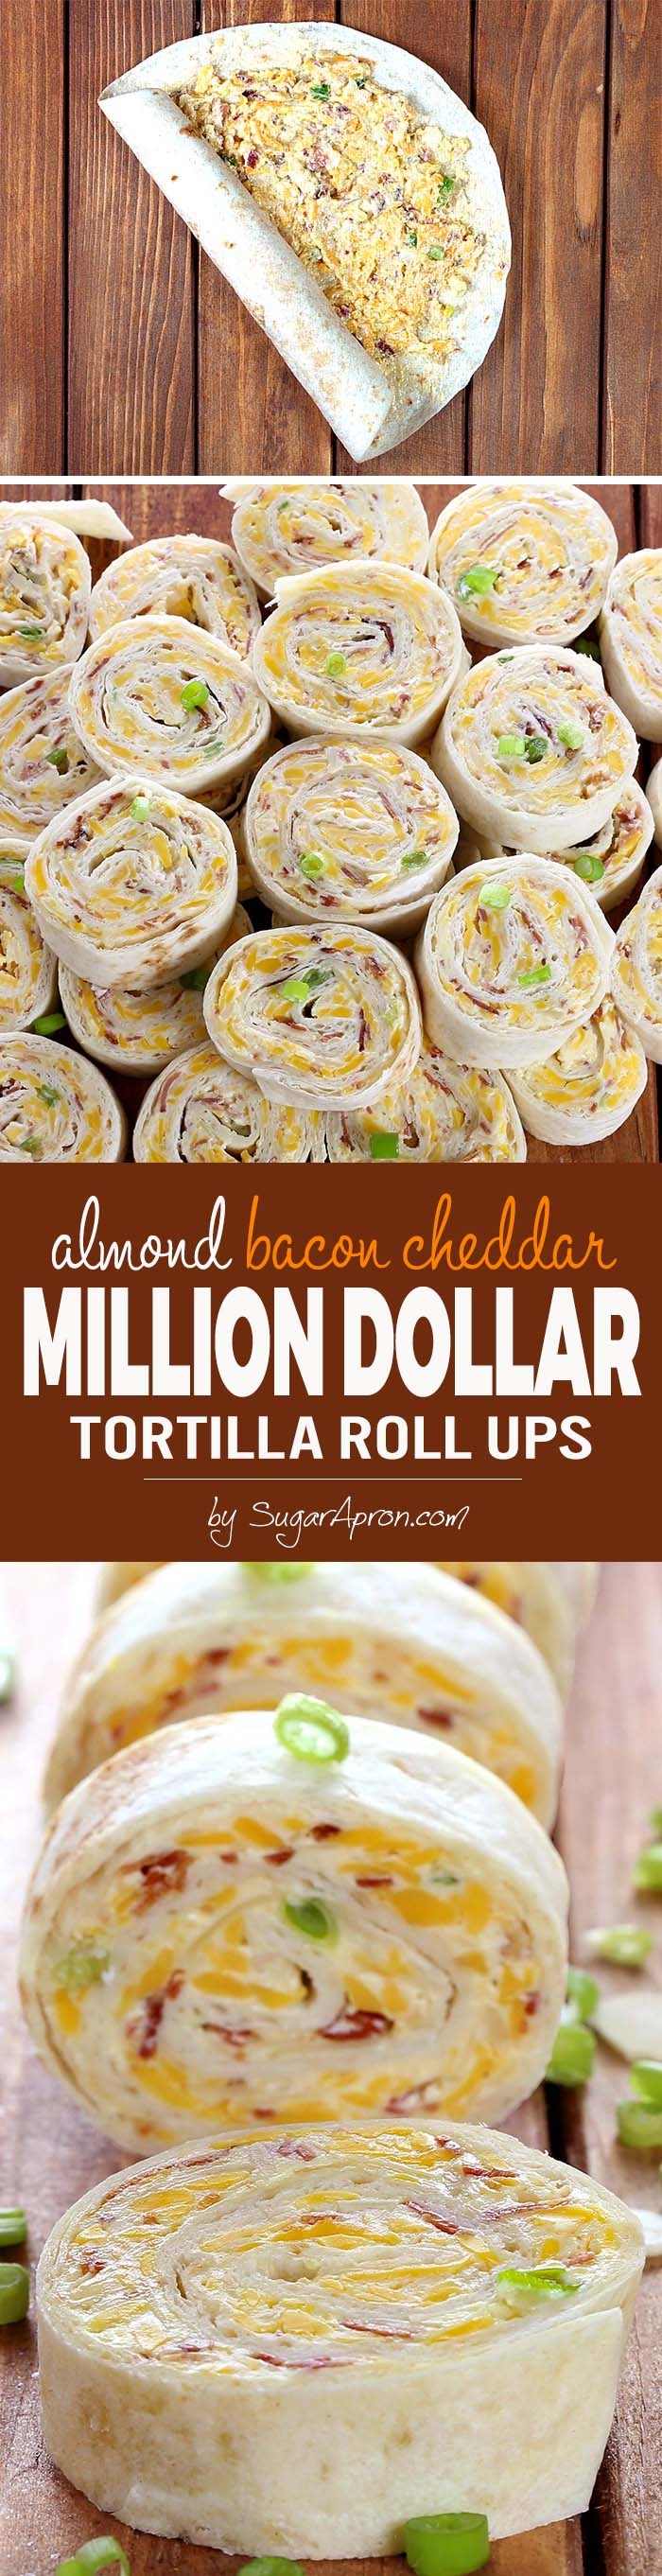 Whatever the reason....These Almond Bacon Cheddar Tortilla Roll Ups taste like a million bucks.